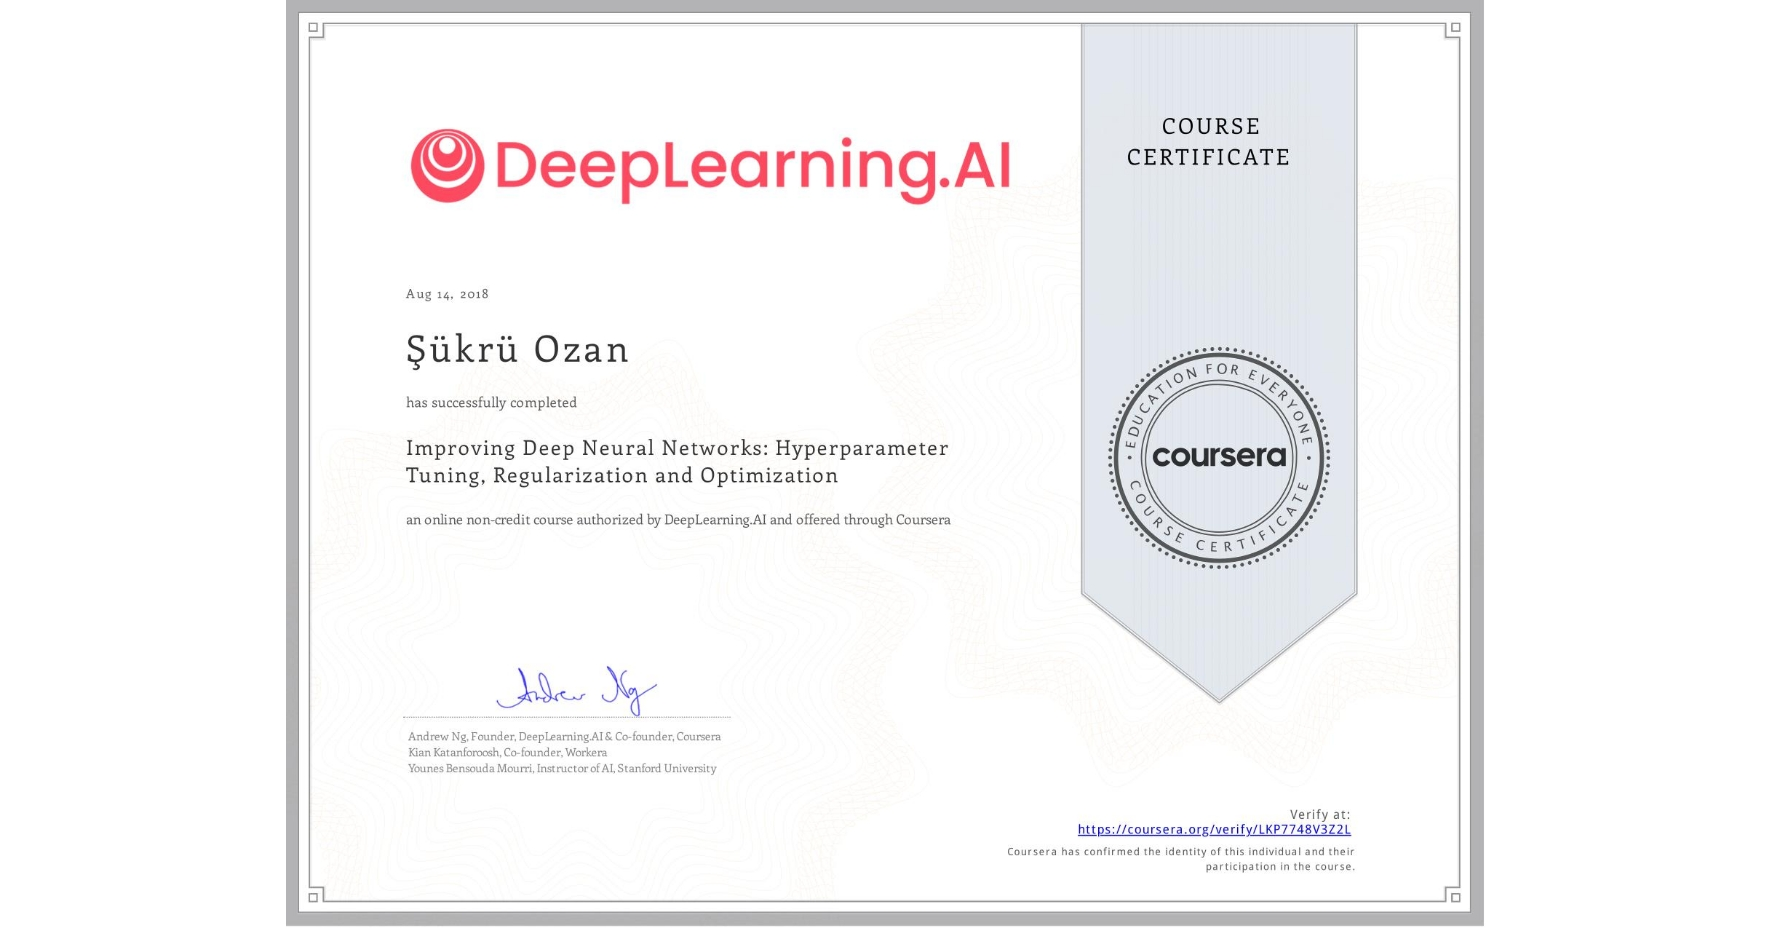 View certificate for Şükrü Ozan, Improving Deep Neural Networks: Hyperparameter tuning, Regularization and Optimization, an online non-credit course authorized by DeepLearning.AI and offered through Coursera